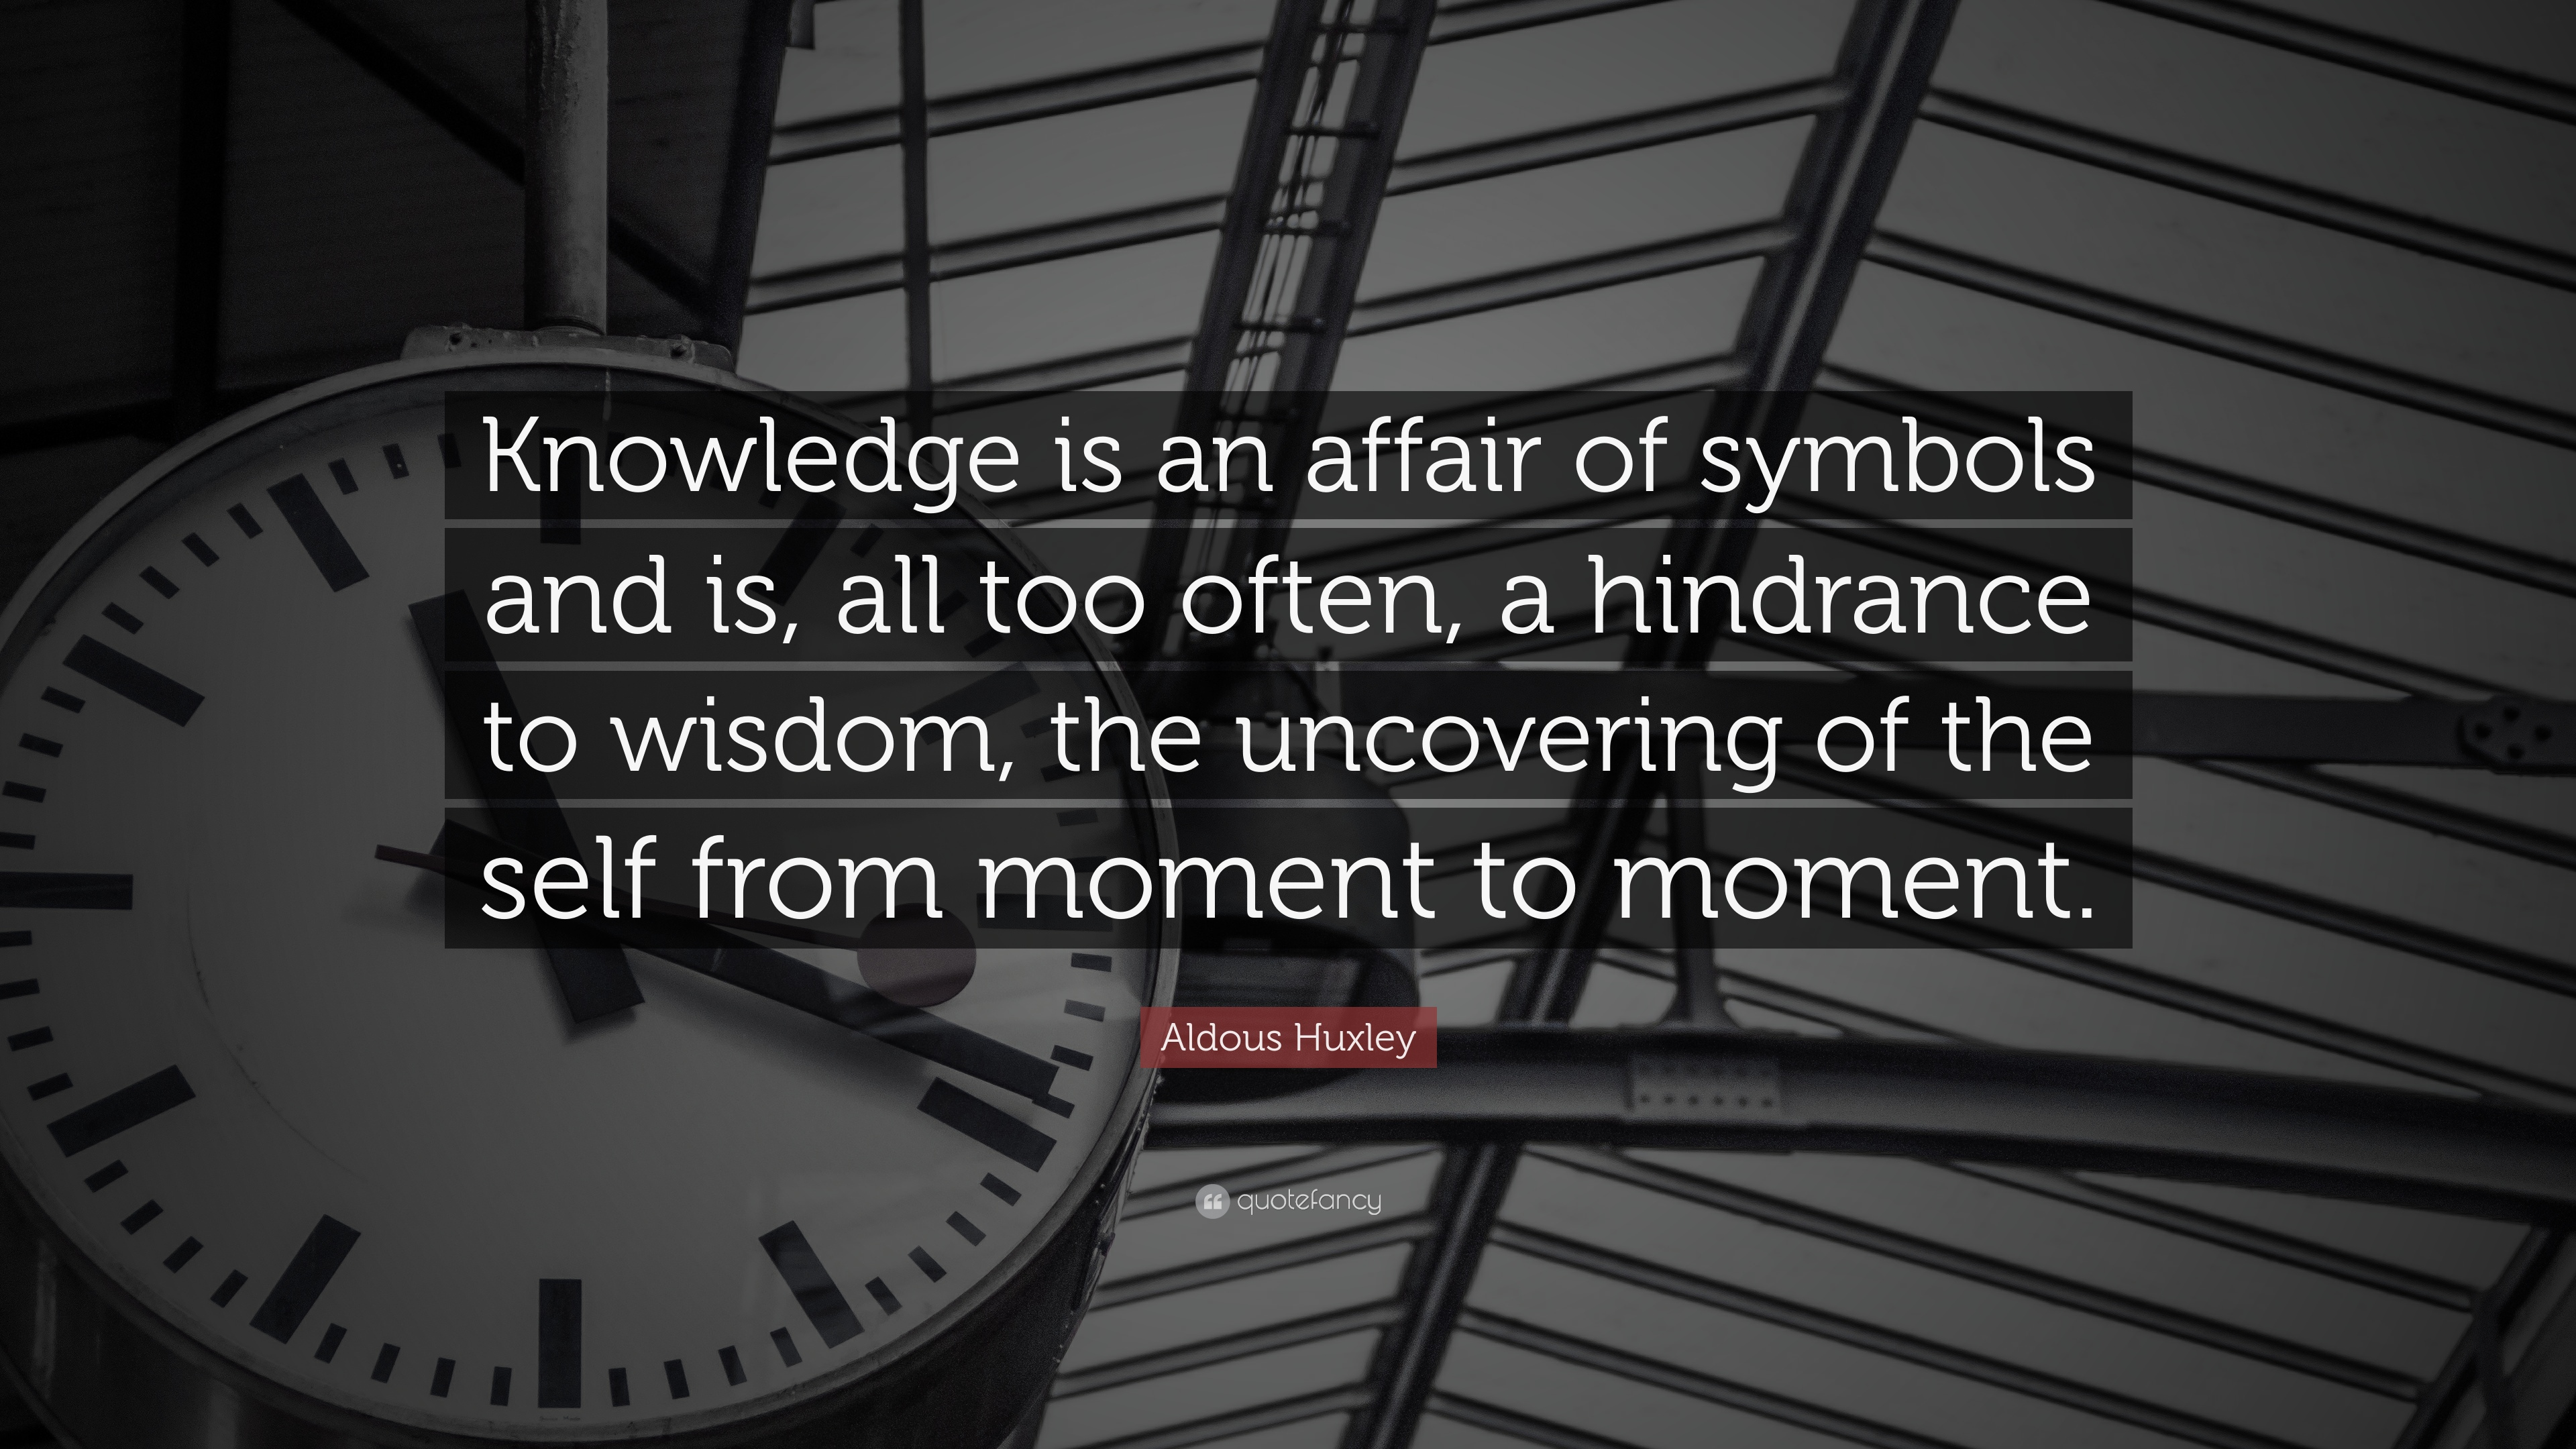 Aldous Huxley Quote Knowledge Is An Affair Of Symbols And Is All